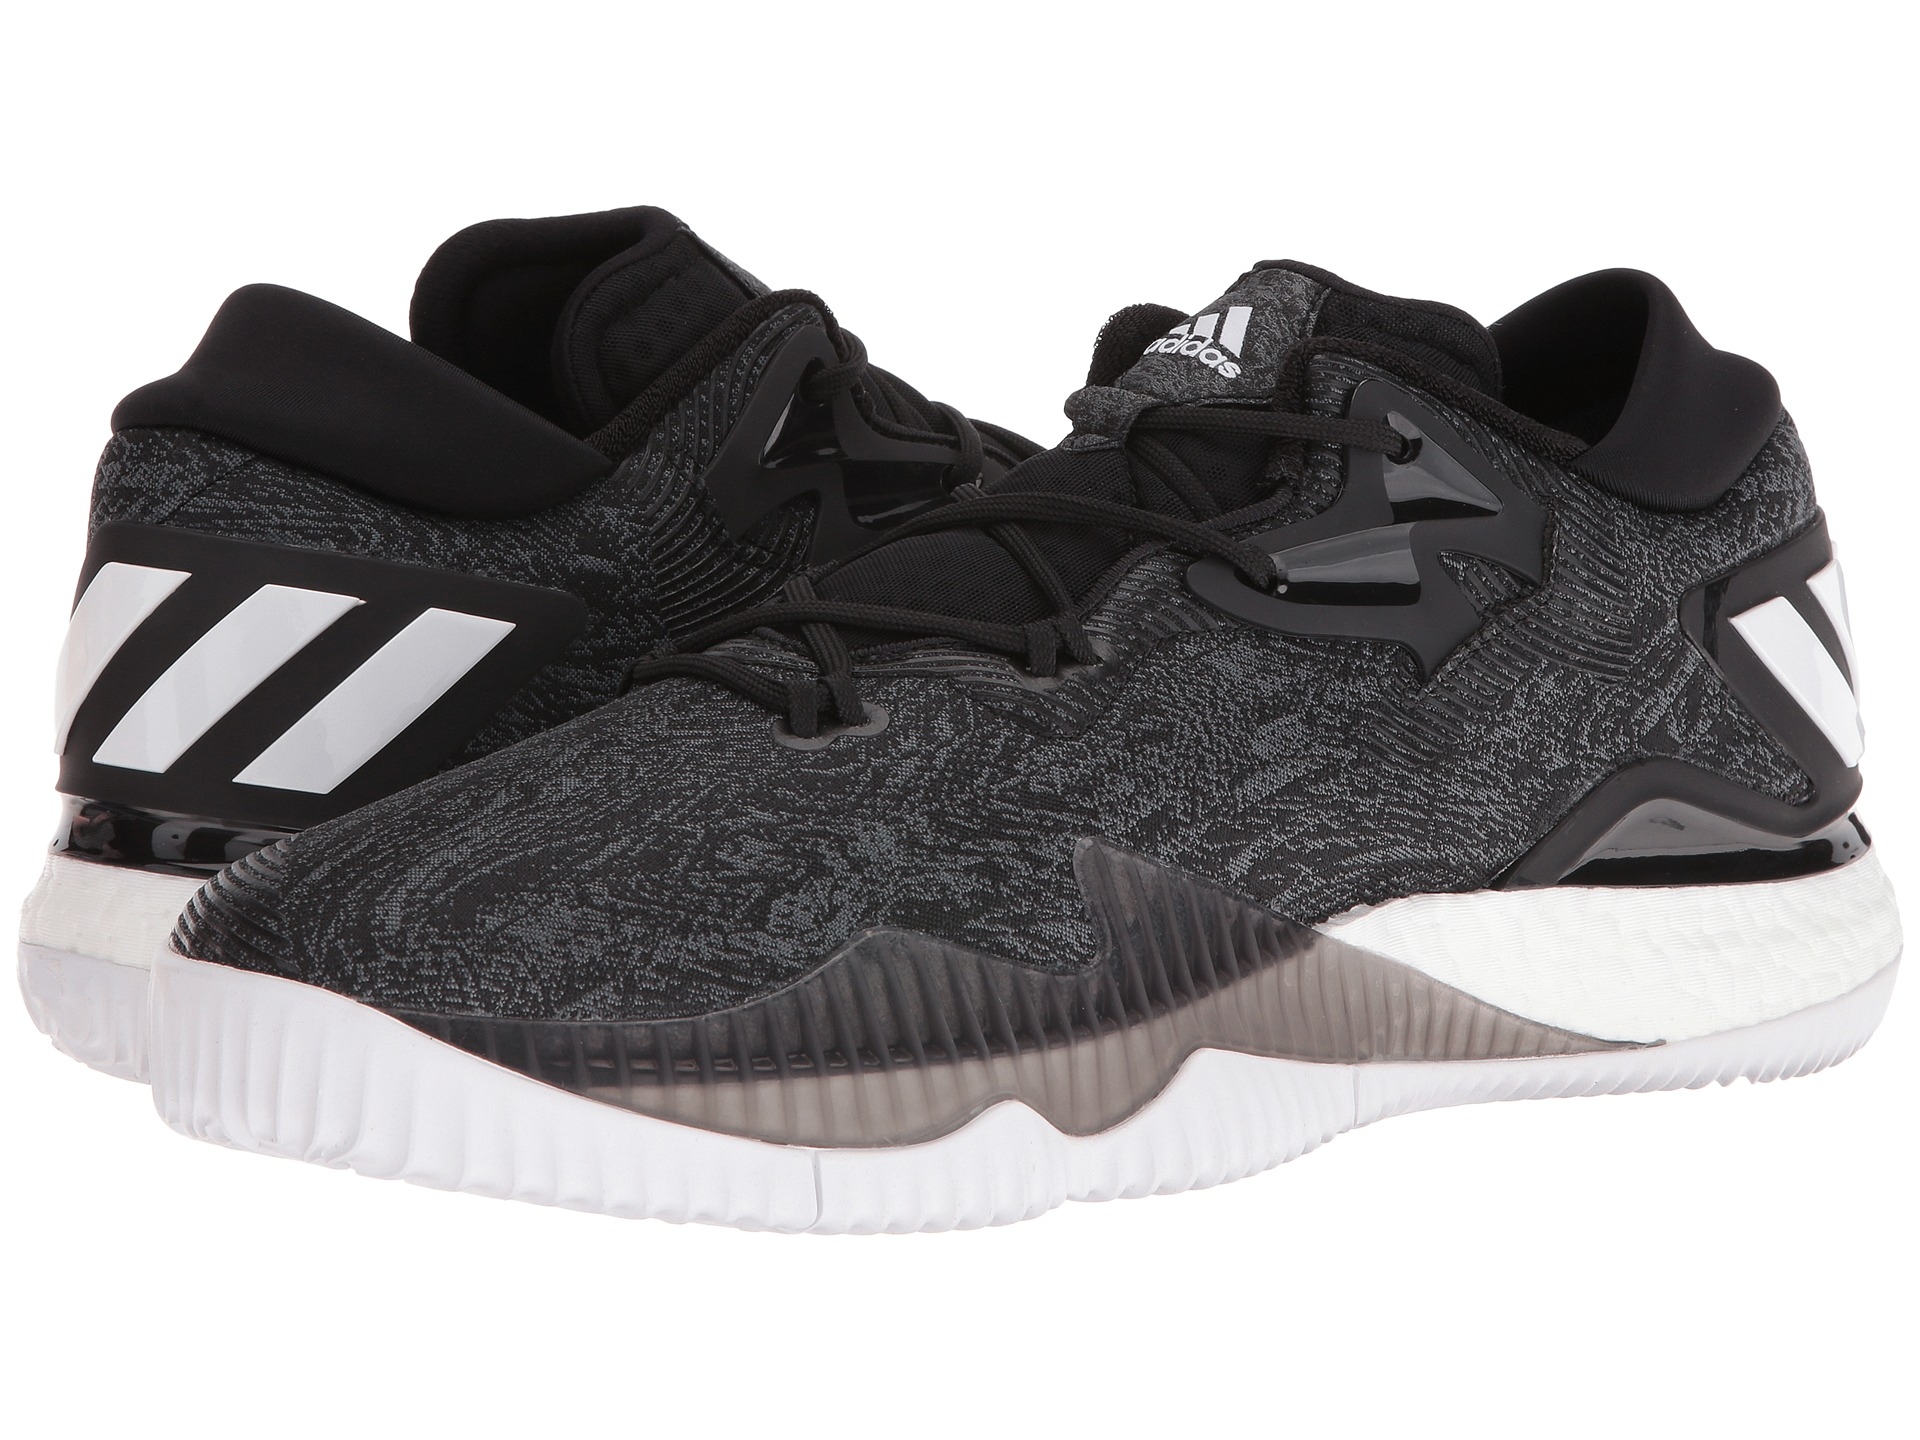 adidas Crazylight Boost Low at 6pm.com